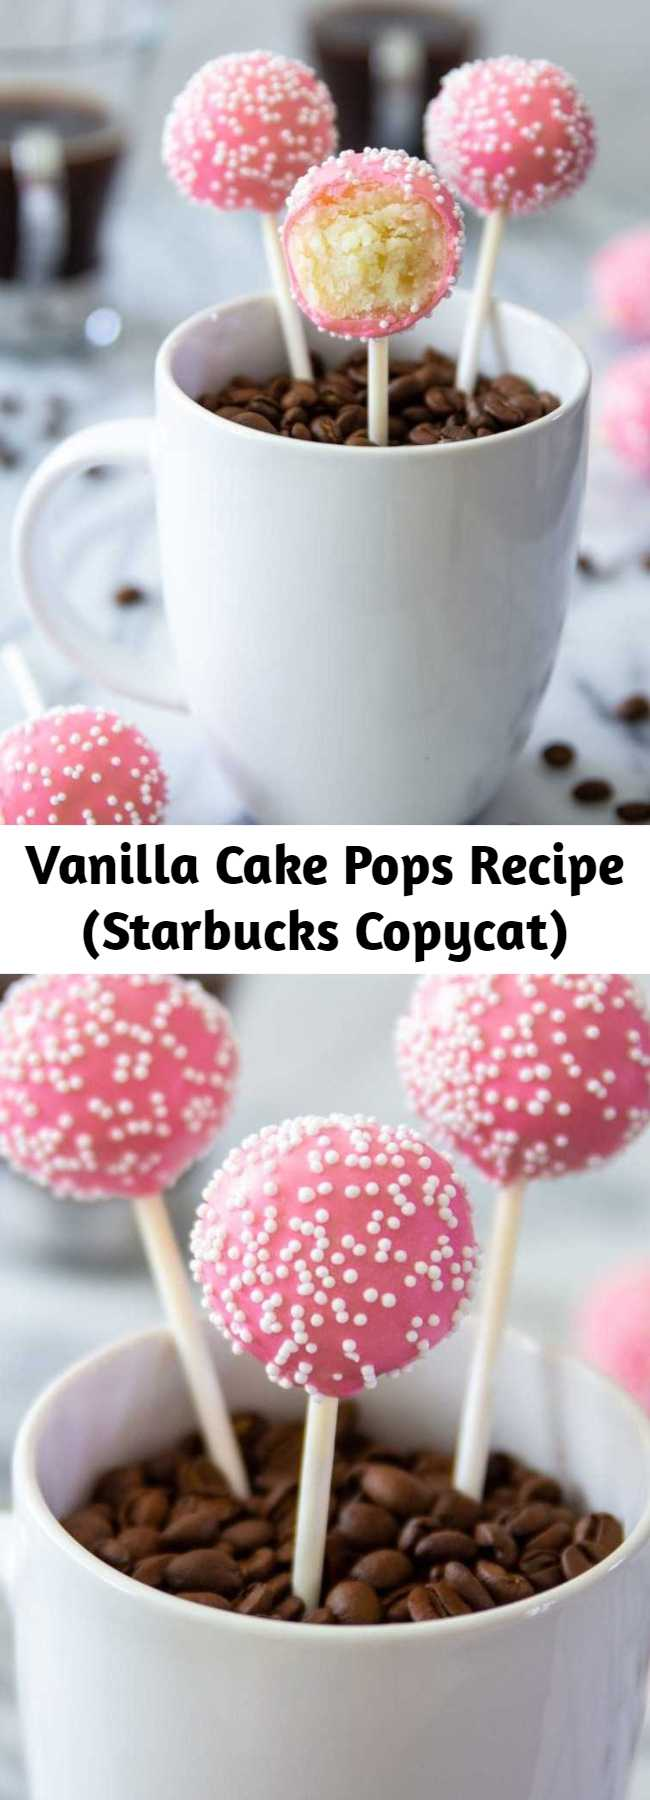 Vanilla Cake Pops Recipe (Starbucks Copycat) - This cake pops recipe is a copycat of Starbucks' birthday cake pop. This little treat is a combination of vanilla cake, frosting, and pink candy coating. The best foolproof cake pop recipe ever. #cakepops #vanillacakepops #starbuckscakepops #starbuckscopycat #bestcakepoprecipe